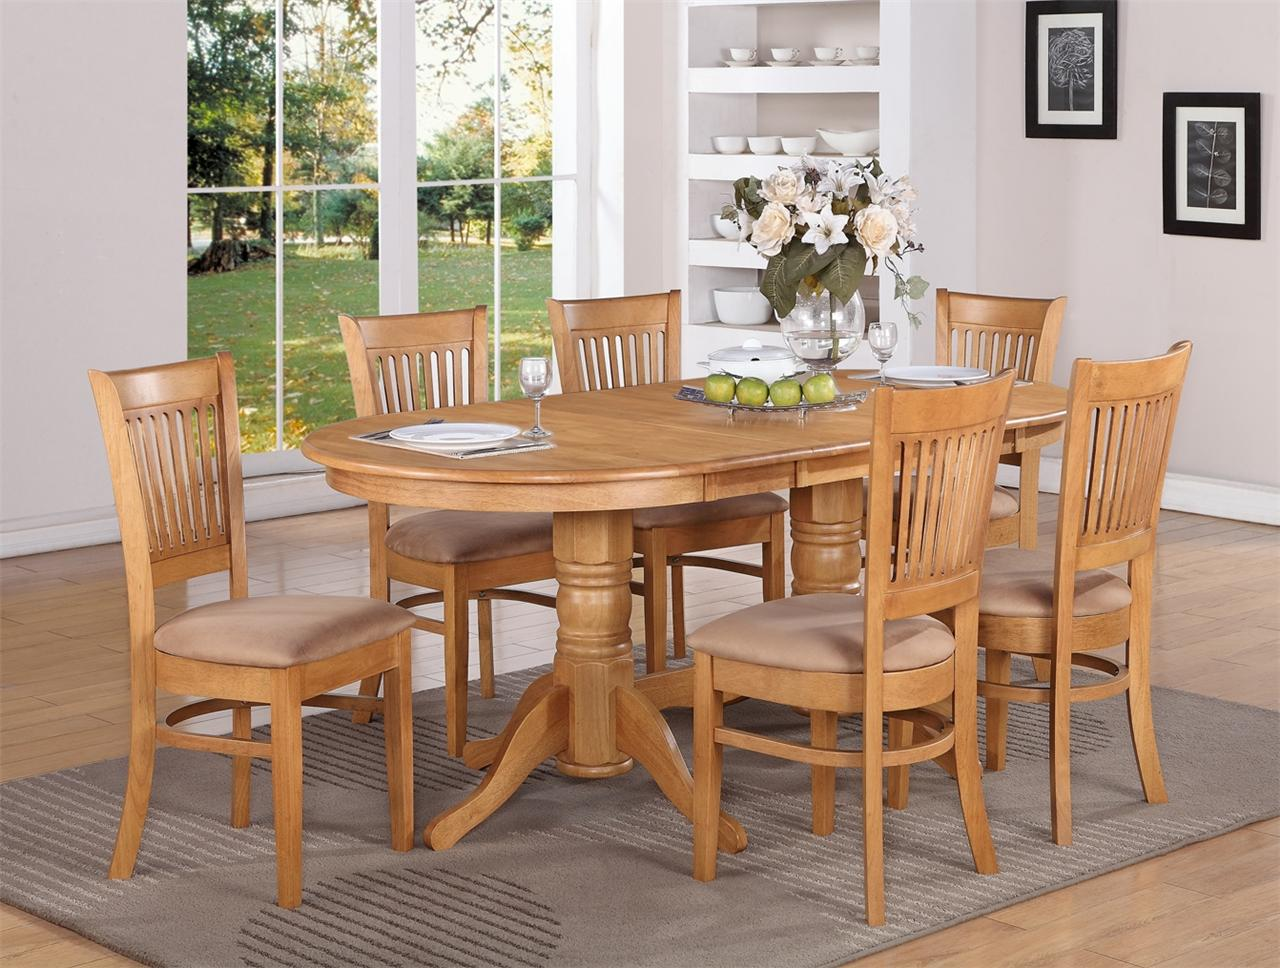 7 PC VANCOUVER OVAL DINETTE KITCHEN DINING TABLE w6  : 580589907o from www.ebay.com size 1280 x 968 jpeg 179kB